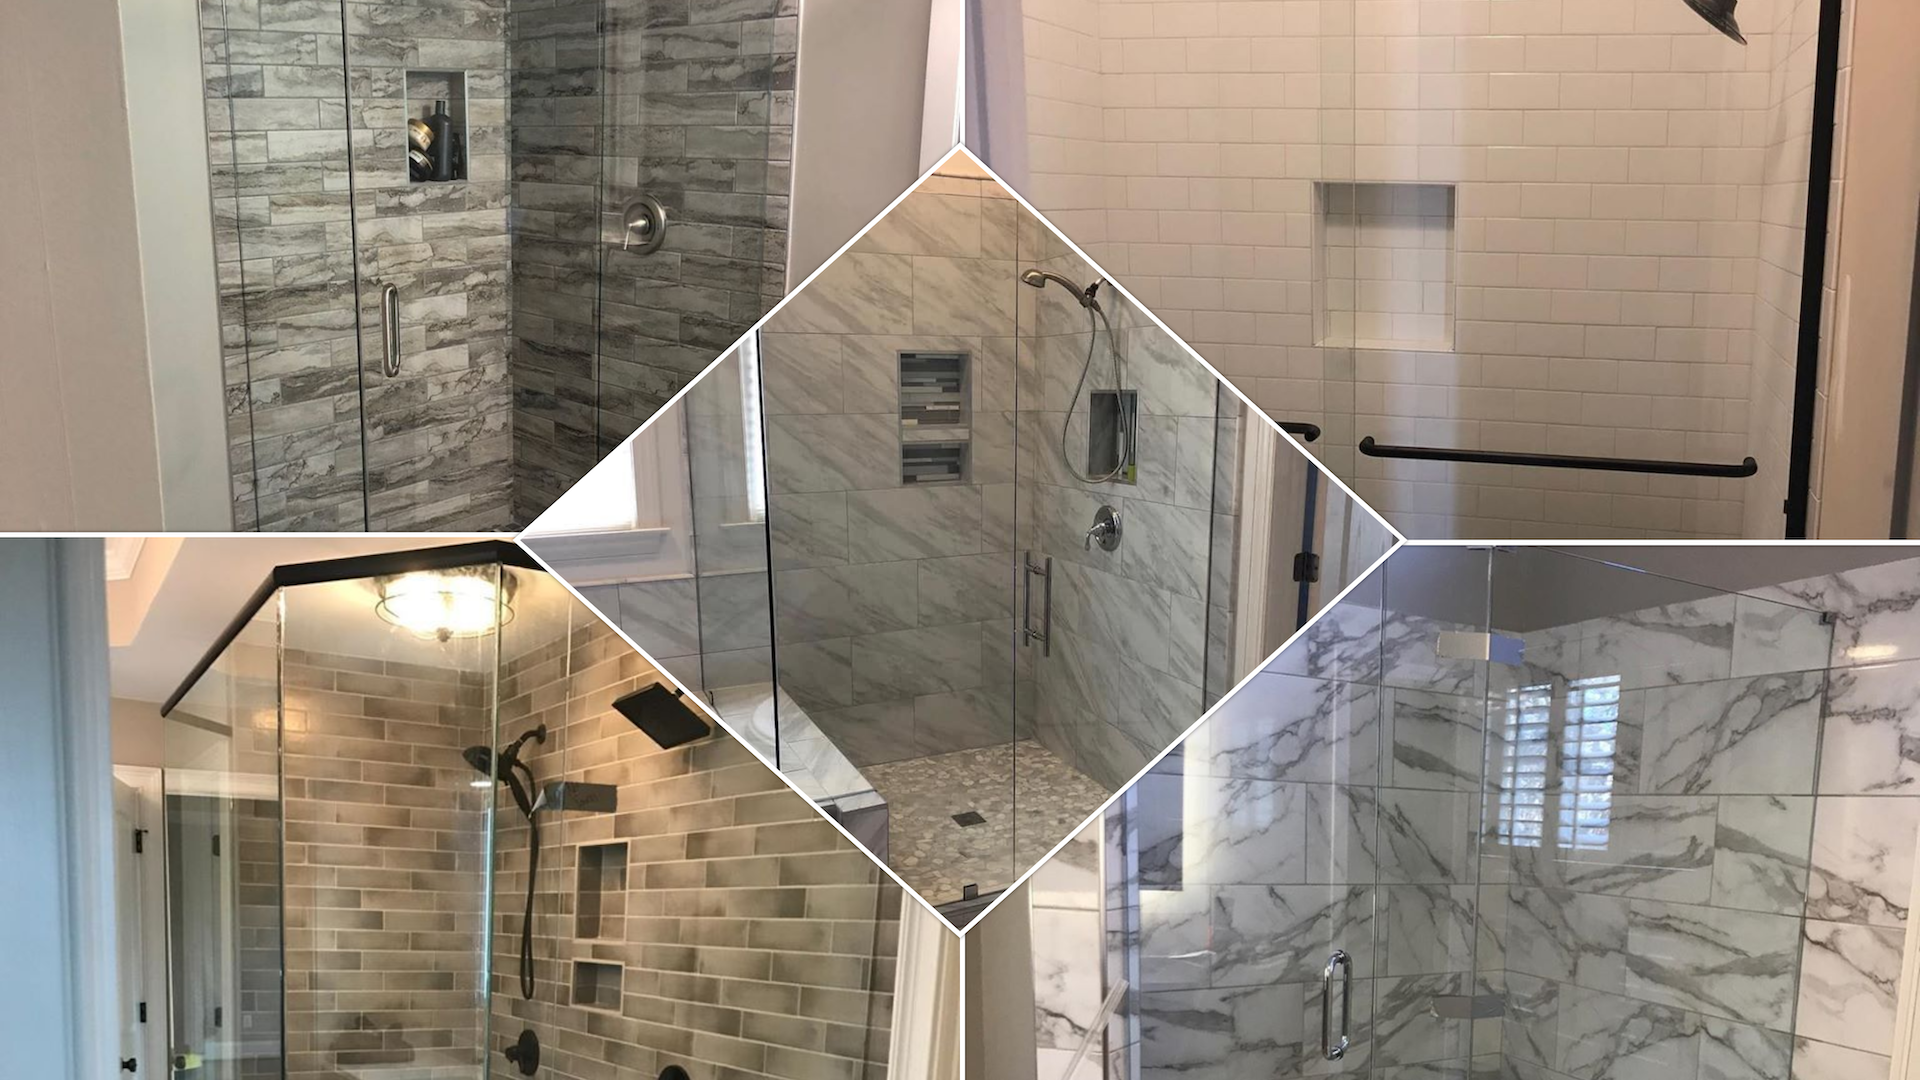 <style> v {   text-shadow: 2px 2px 8px #1e2a55; } </style><strong><v>Frameless and Framed Shower Doors - Mirrors - Glass Replacement</v></strong>